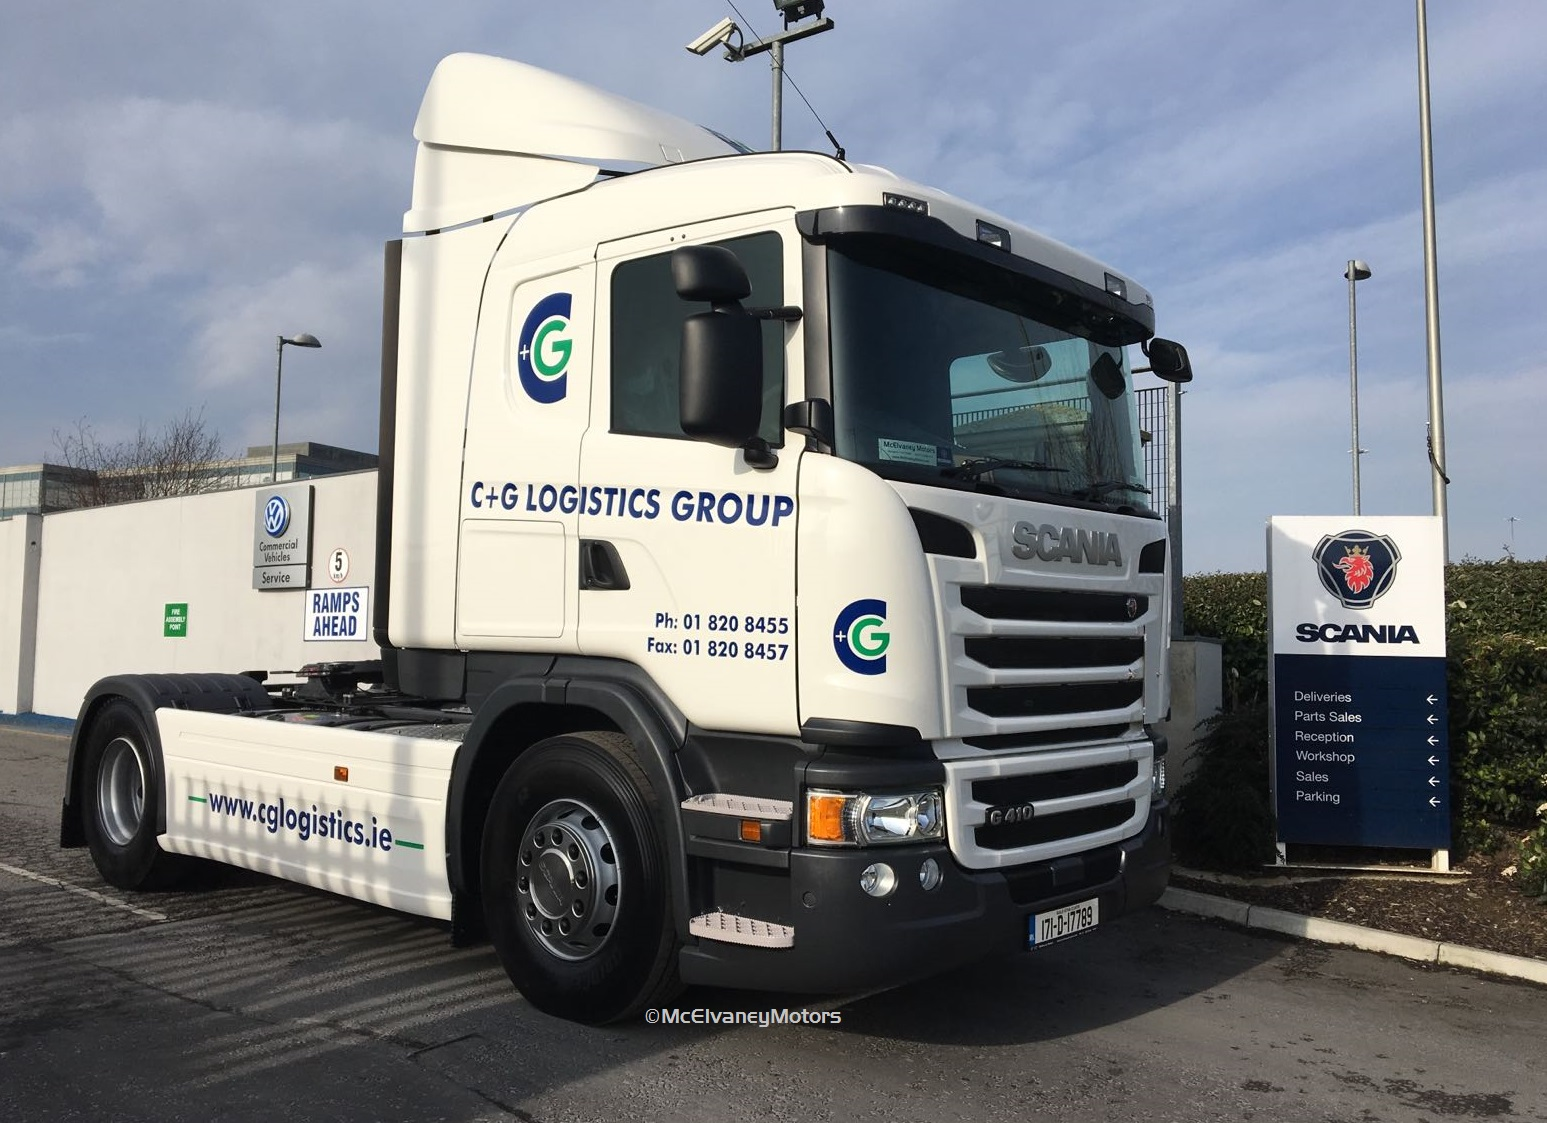 Another new Scania G410 for C & G Logistics